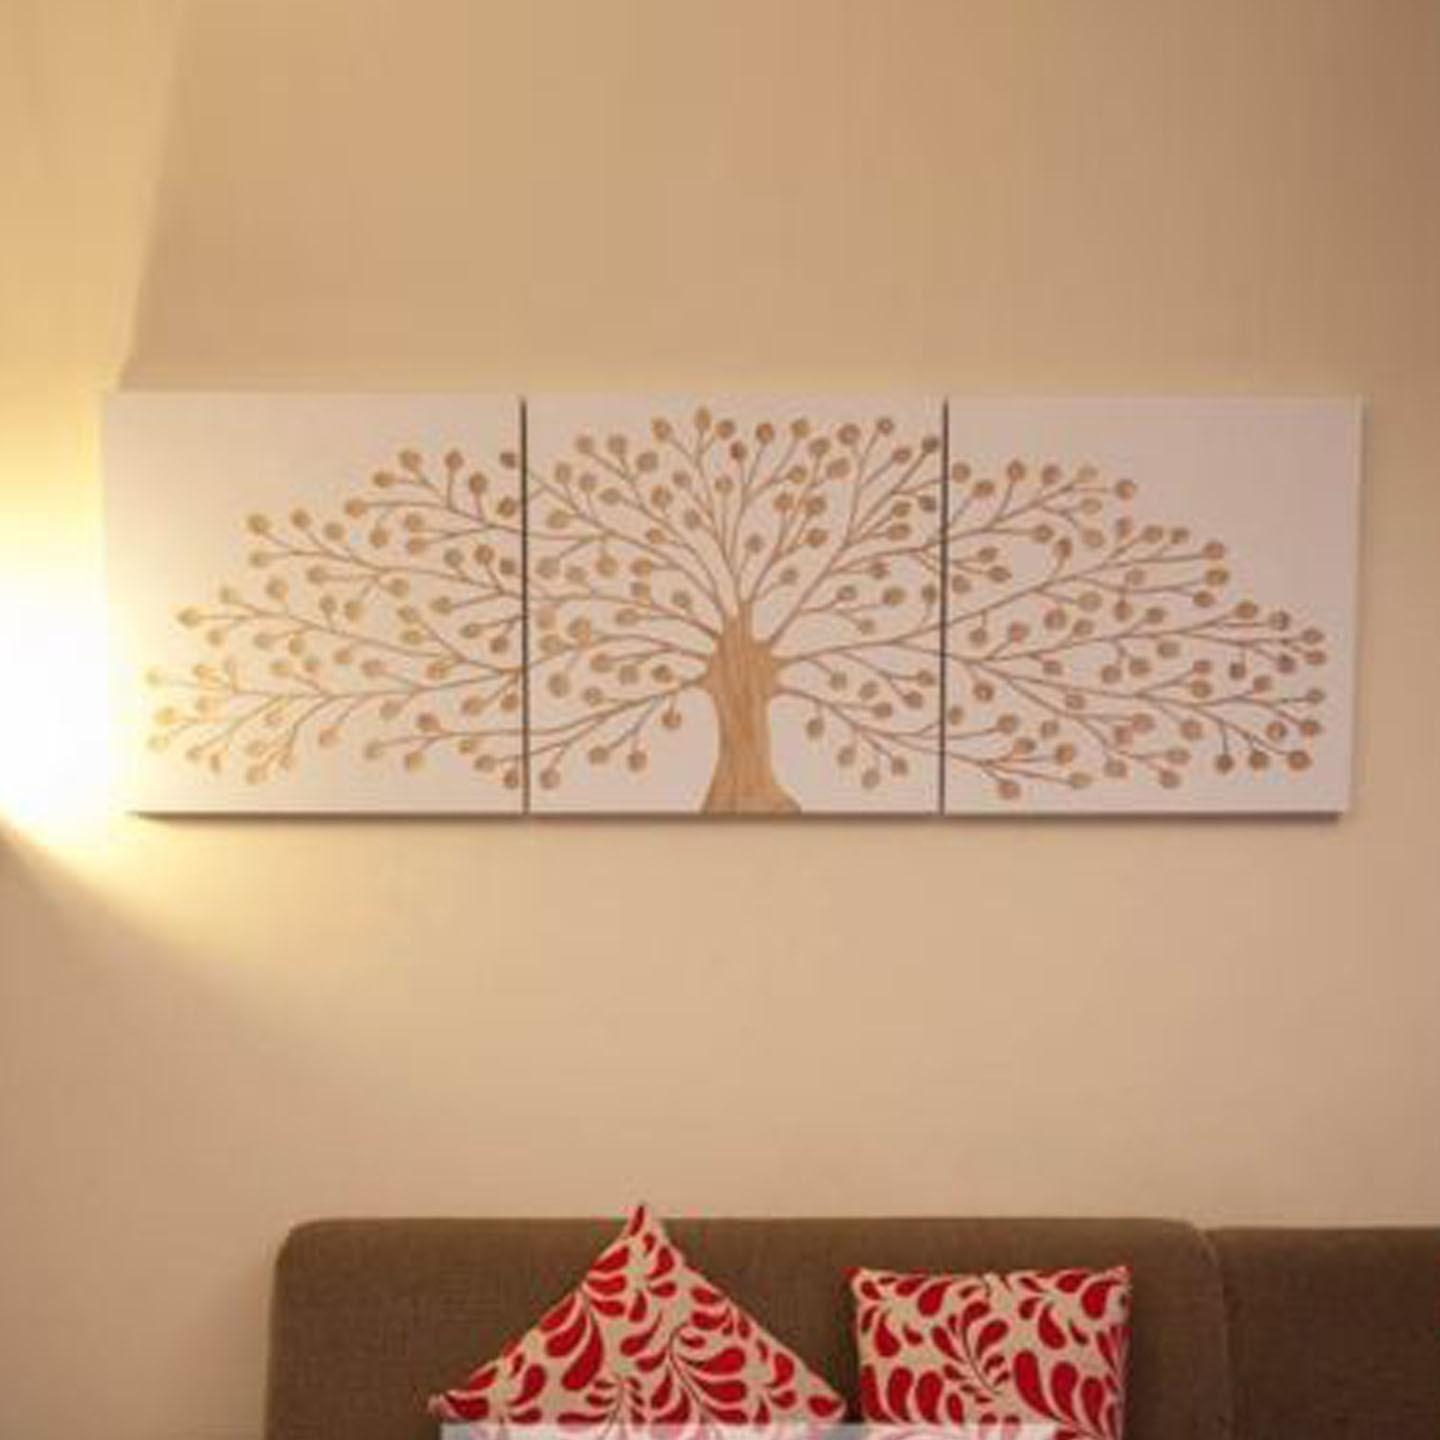 Tree Of Life 60 X 60Cm – White – 3 Panels Triptych Wall Art Within Tree Of Life Wood Carving Wall Art (View 14 of 20)